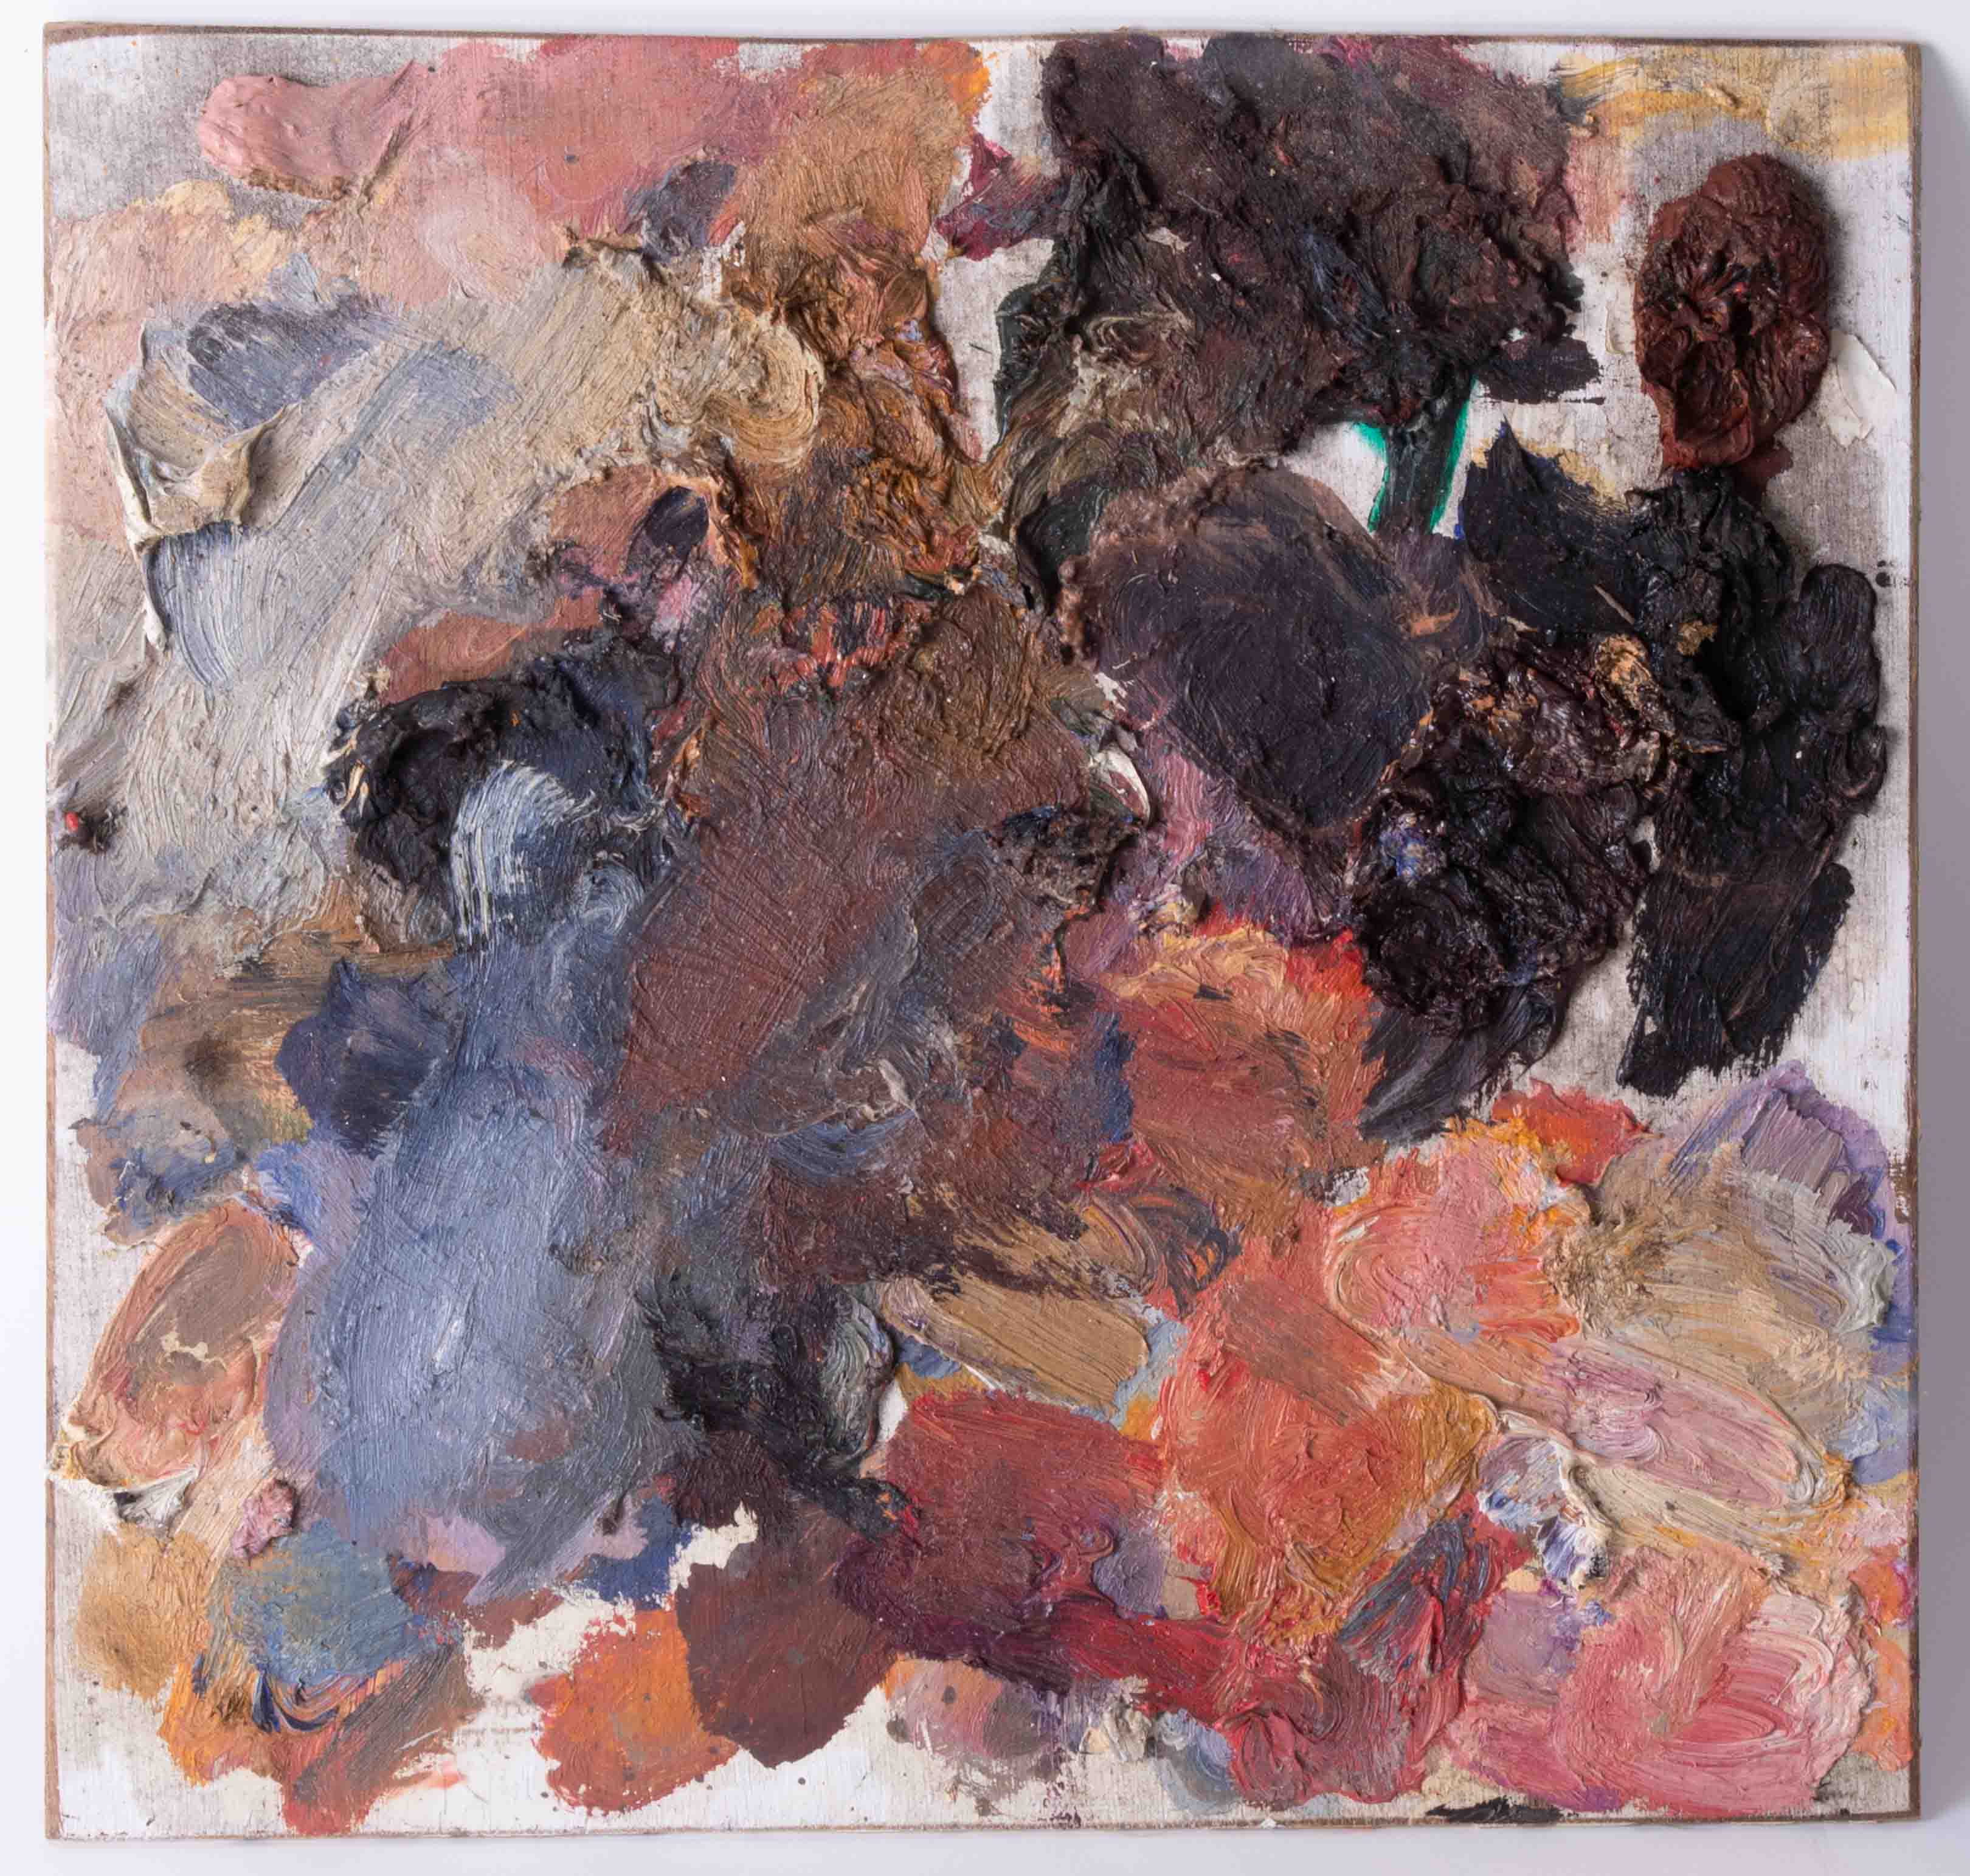 Robert Lenkiewicz (1941-2002) four artist palettes, unframed, Provenance, from a private studio that - Image 2 of 5